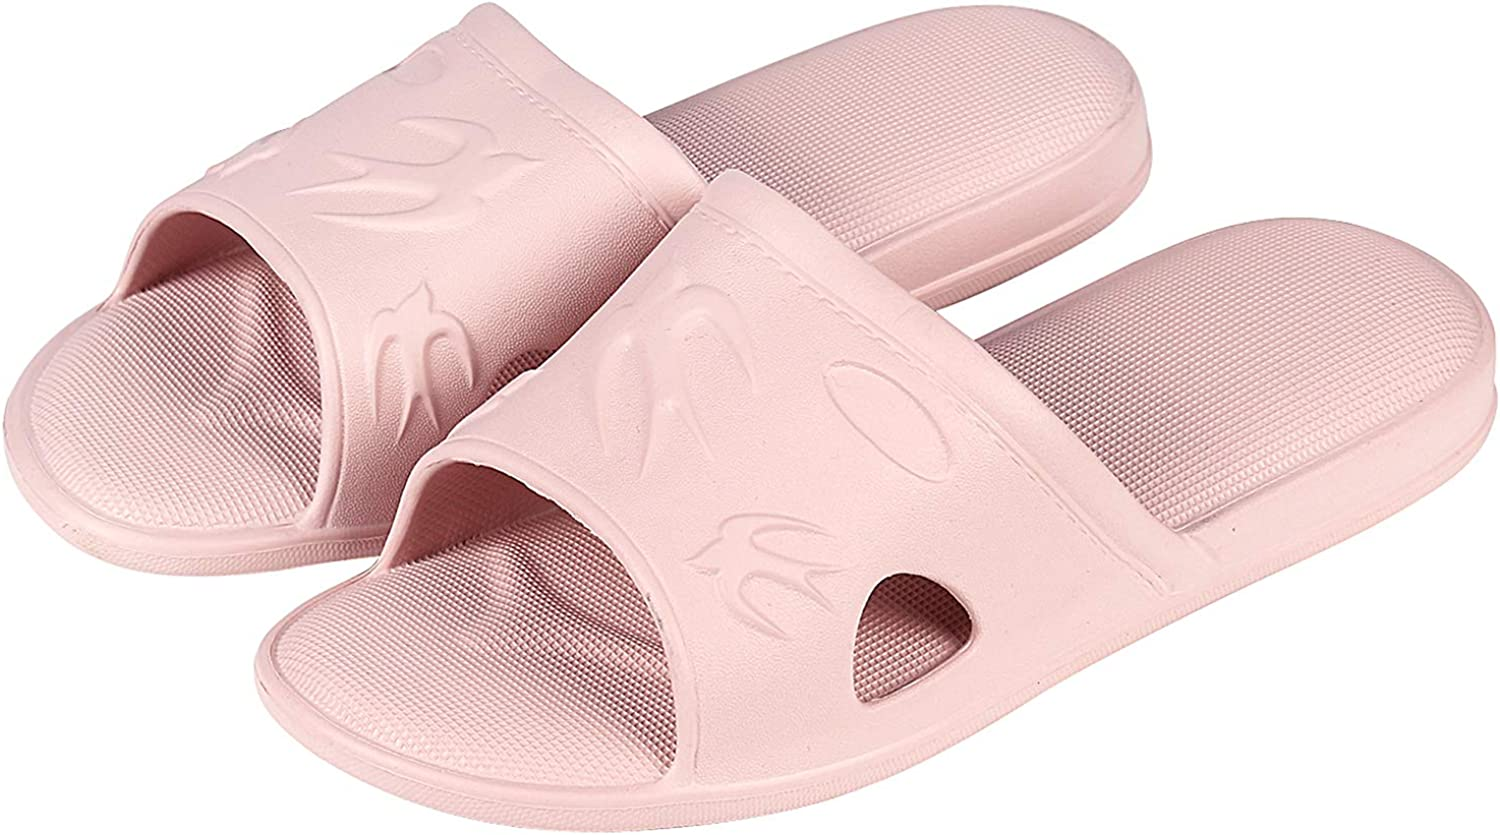 Shevalues Flexible Plastic Bath Slippers Cushioned Cozy House Slippers Emboss Bird Quick Dry Shower Sandal Pink L